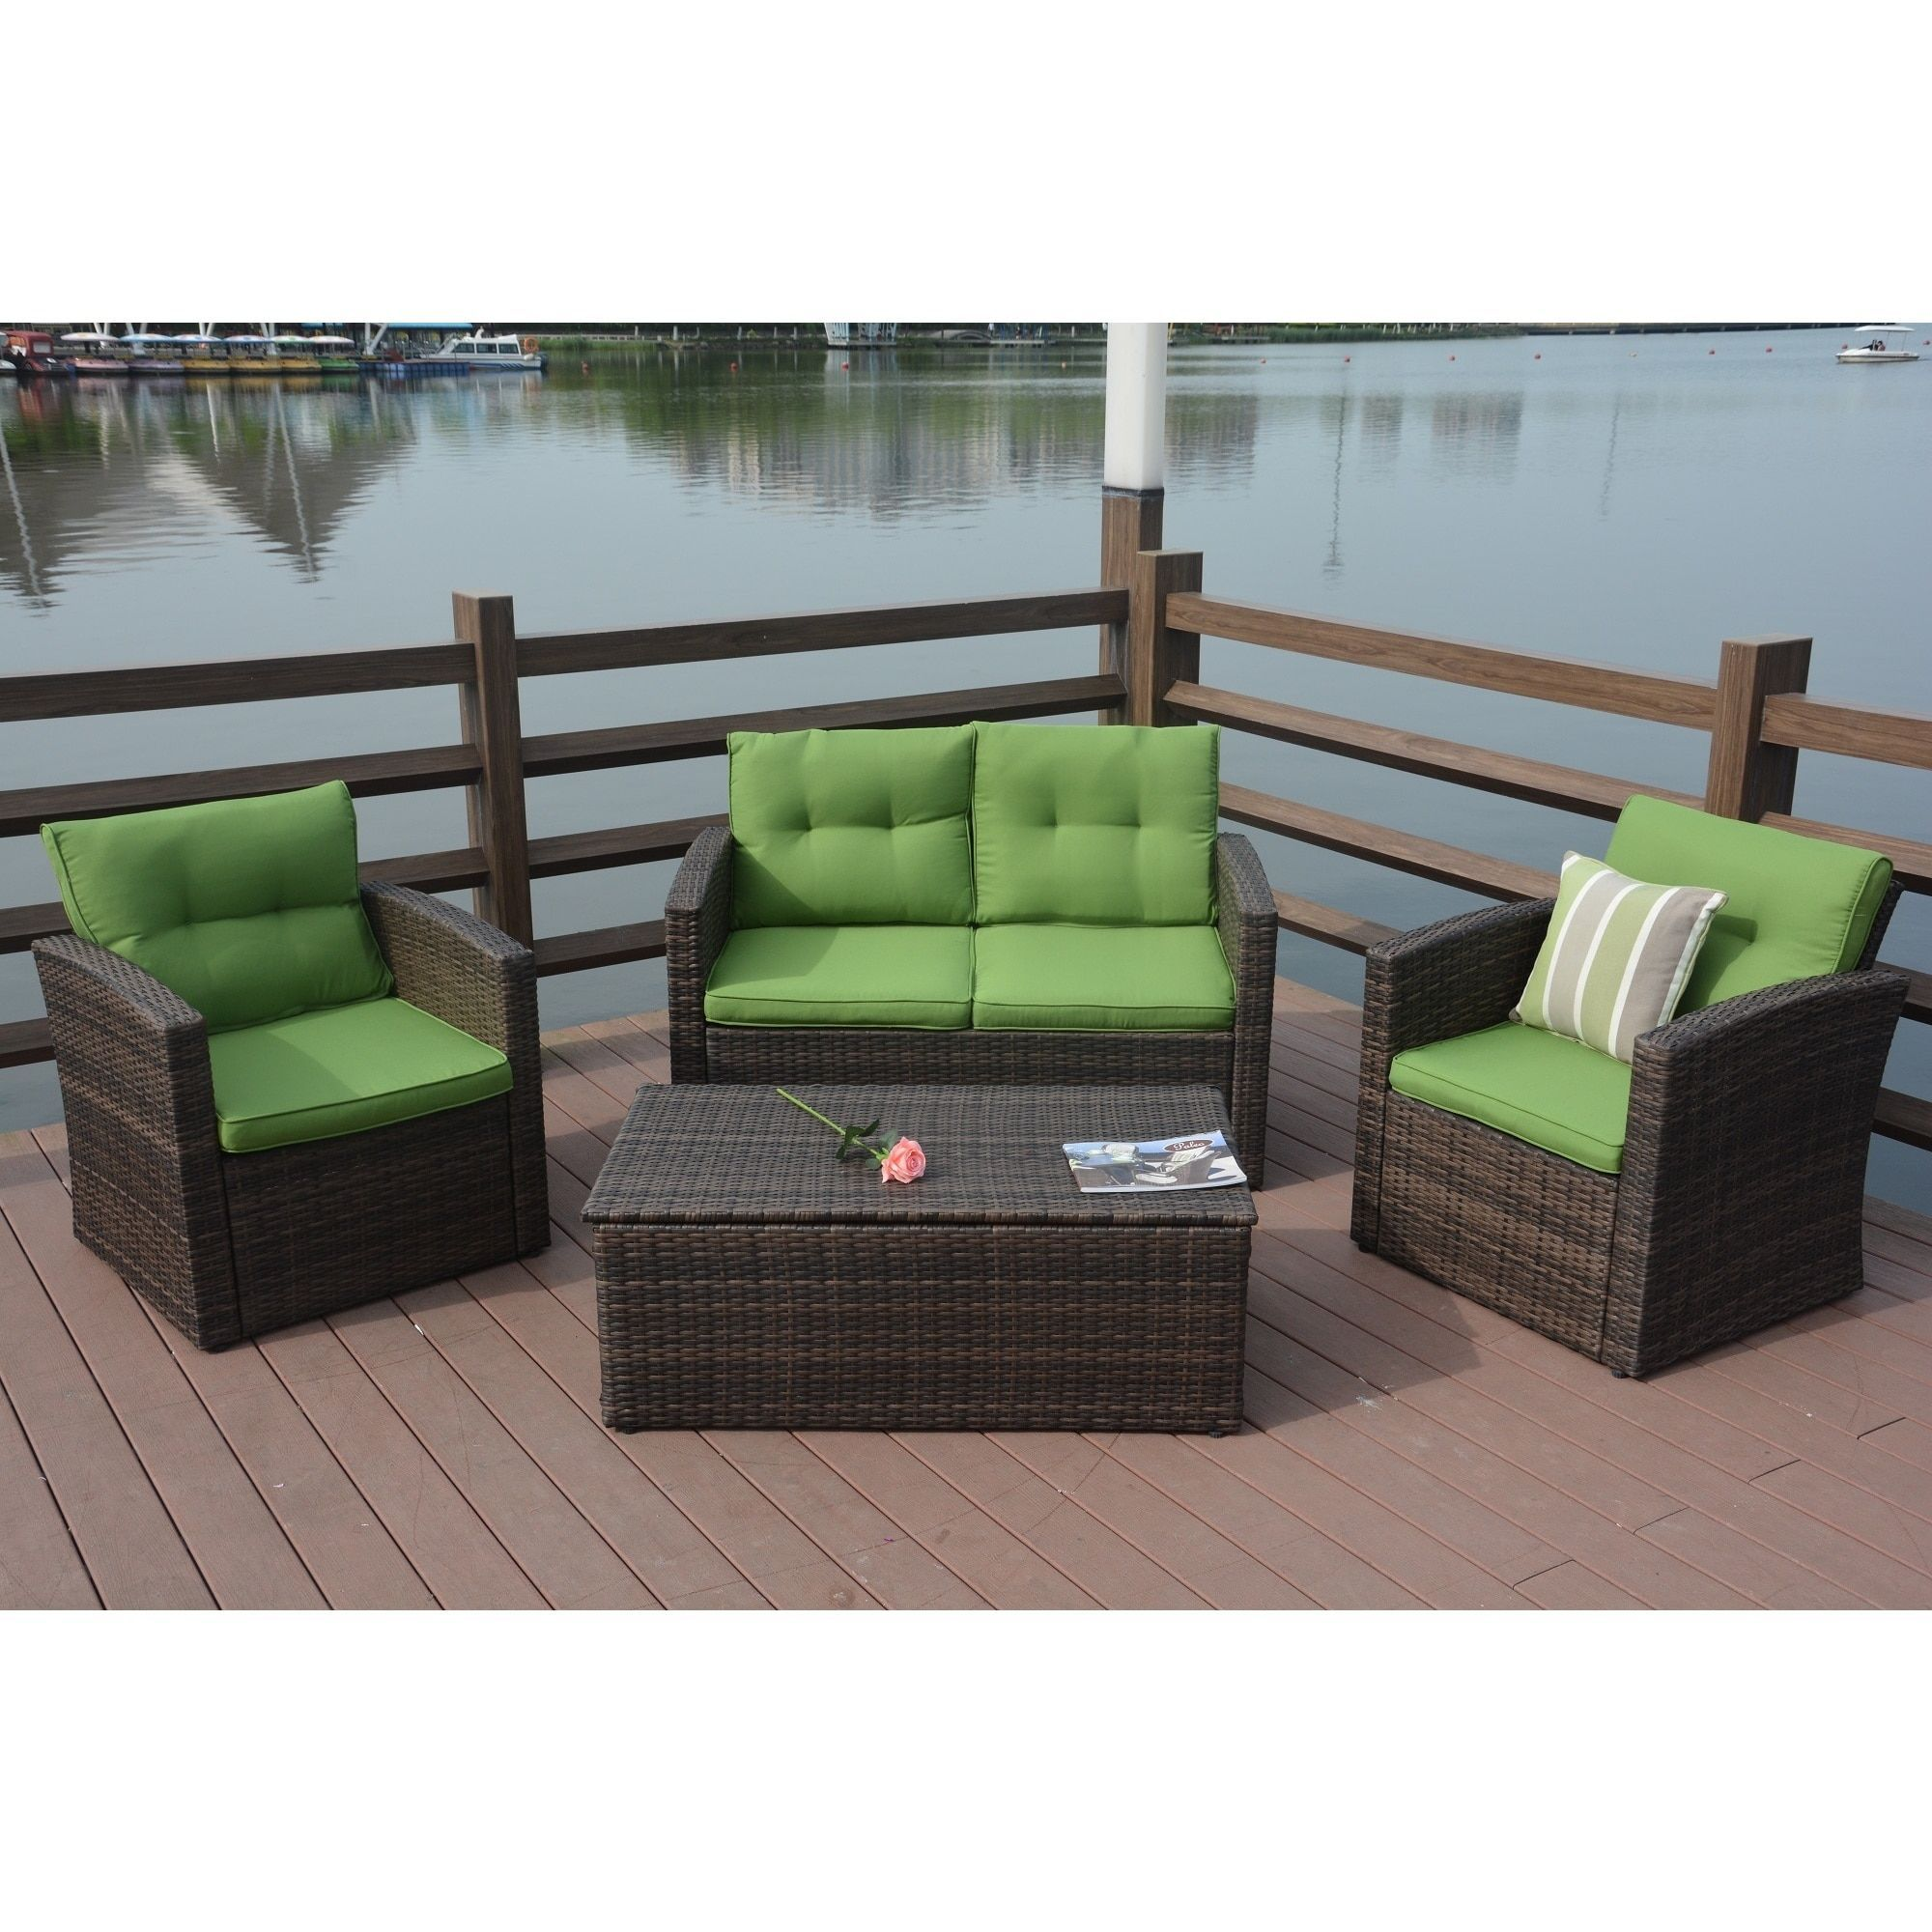 Puerta 4 piece Outdoor Rattan Patio Furniture Set with Cushion Box